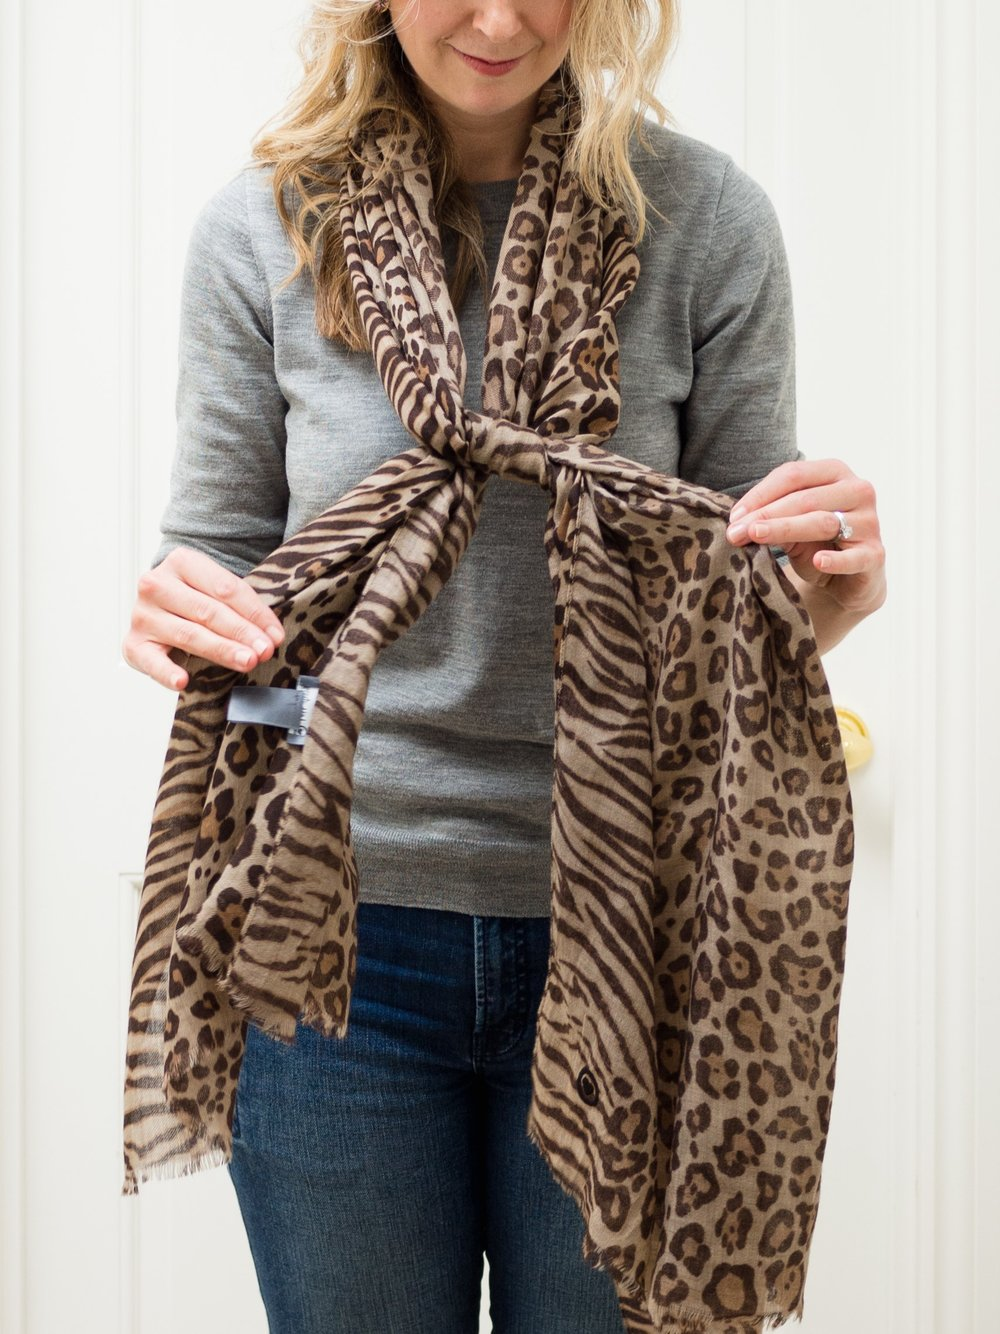 Lois Avery How to Tie a scarf